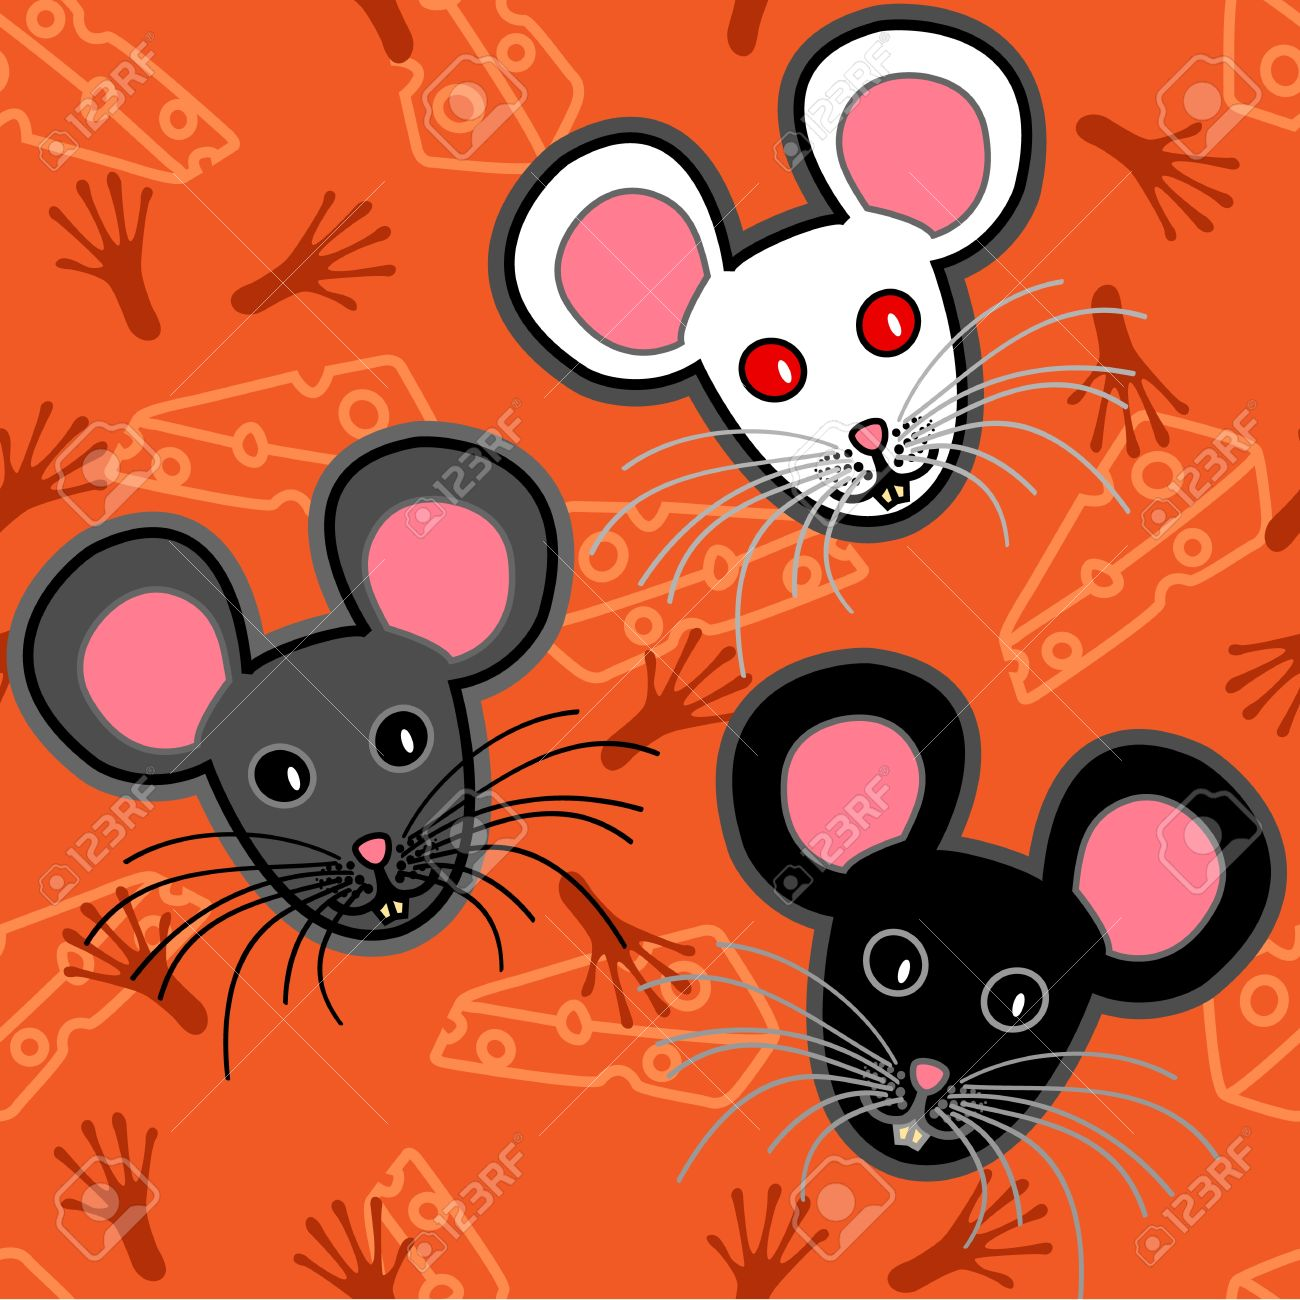 Seamless pattern of cute and fun graphic cartoon grey, black and white mice, with cheese and paw print or tracks over orange backgroun. Stock Vector - 10828973